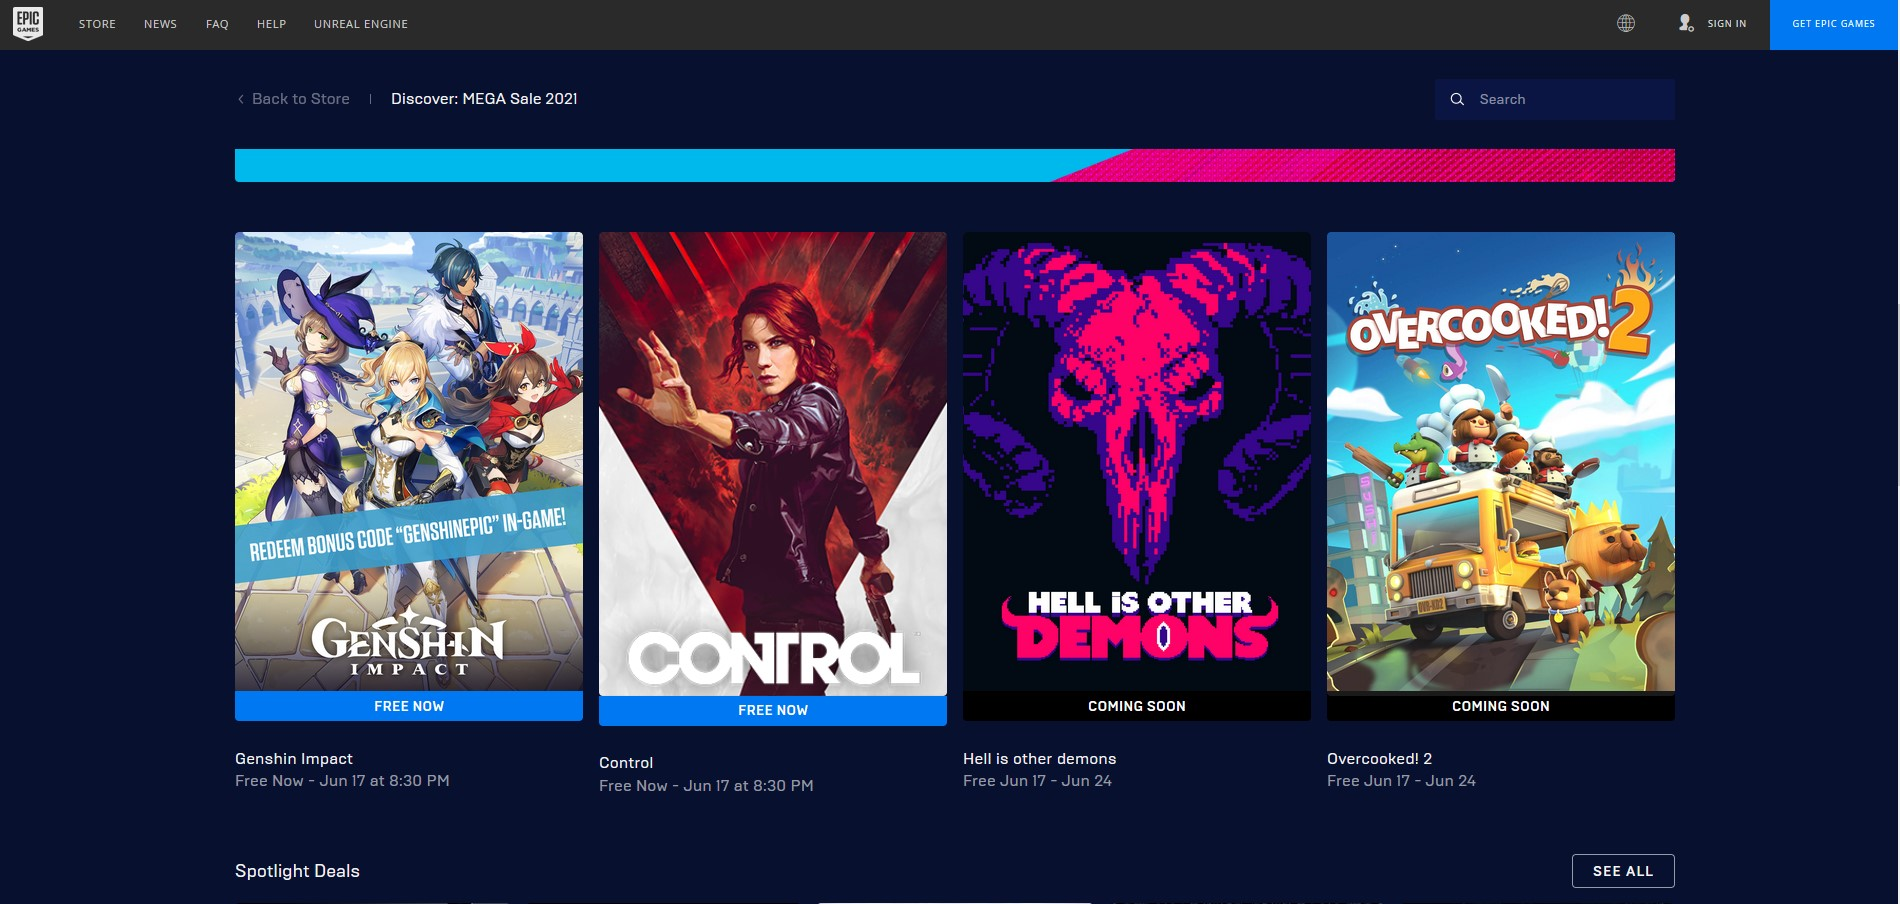 Epic Games is offering Control & Genshin free for one week only